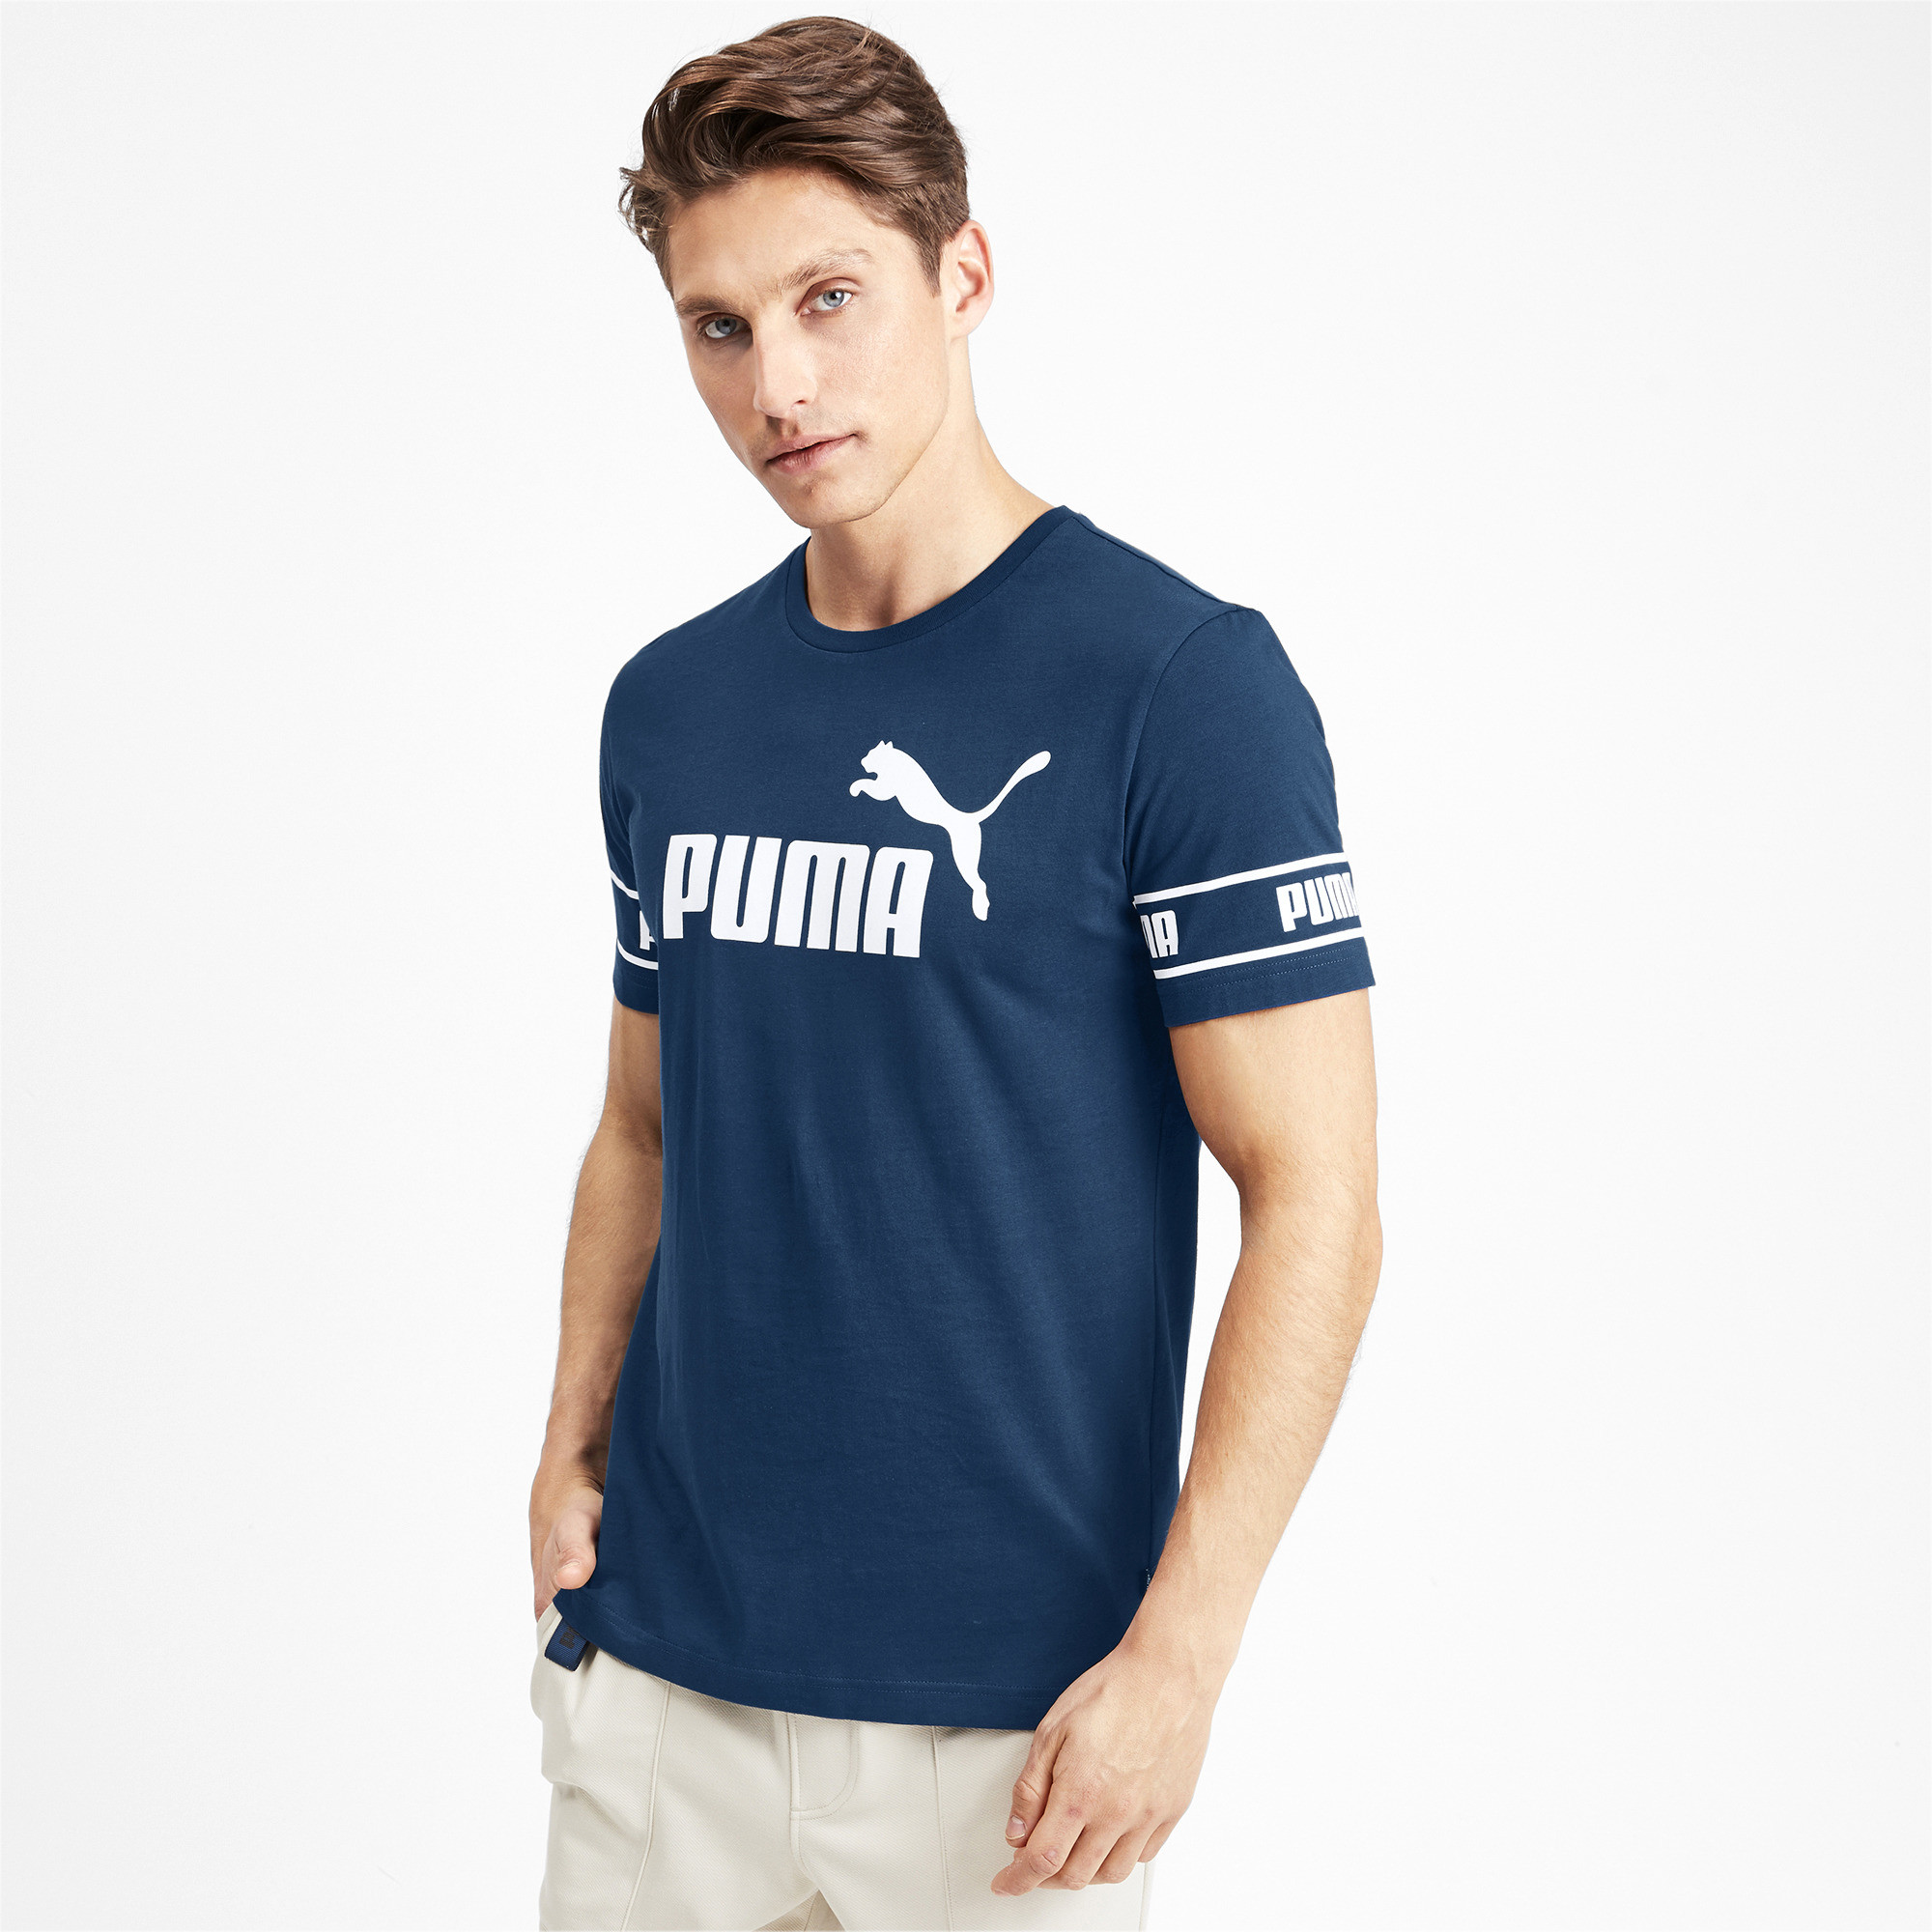 PUMA-Amplified-Men-039-s-Big-Logo-Tee-Men-Tee-Basics thumbnail 27